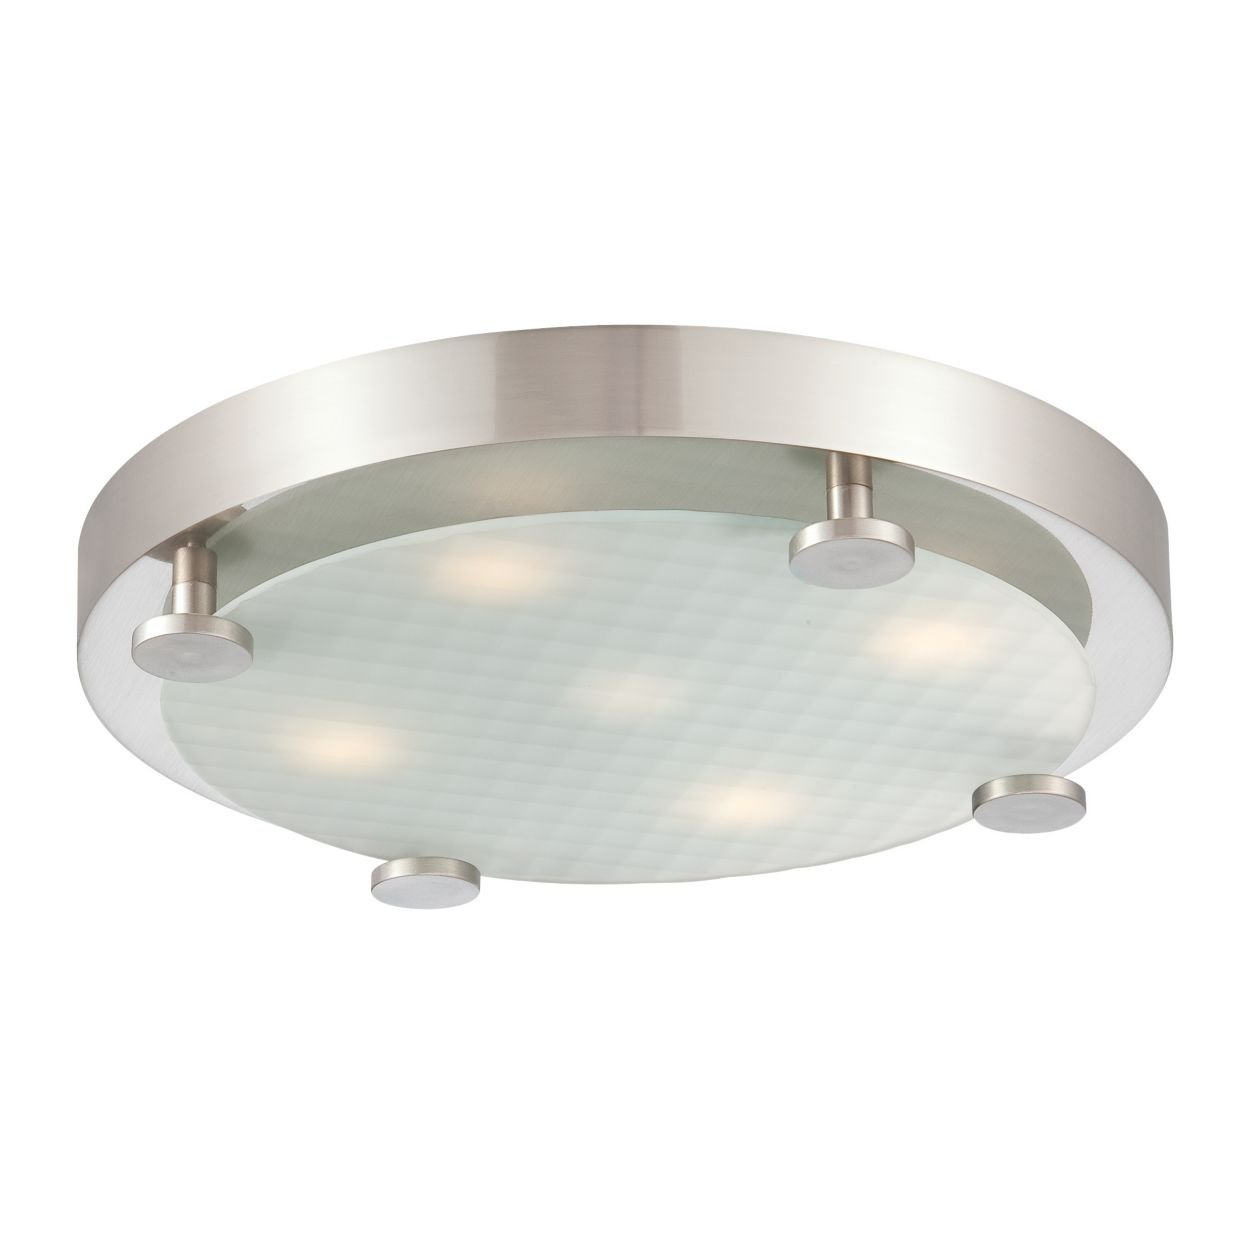 Ledino Flush ceiling light